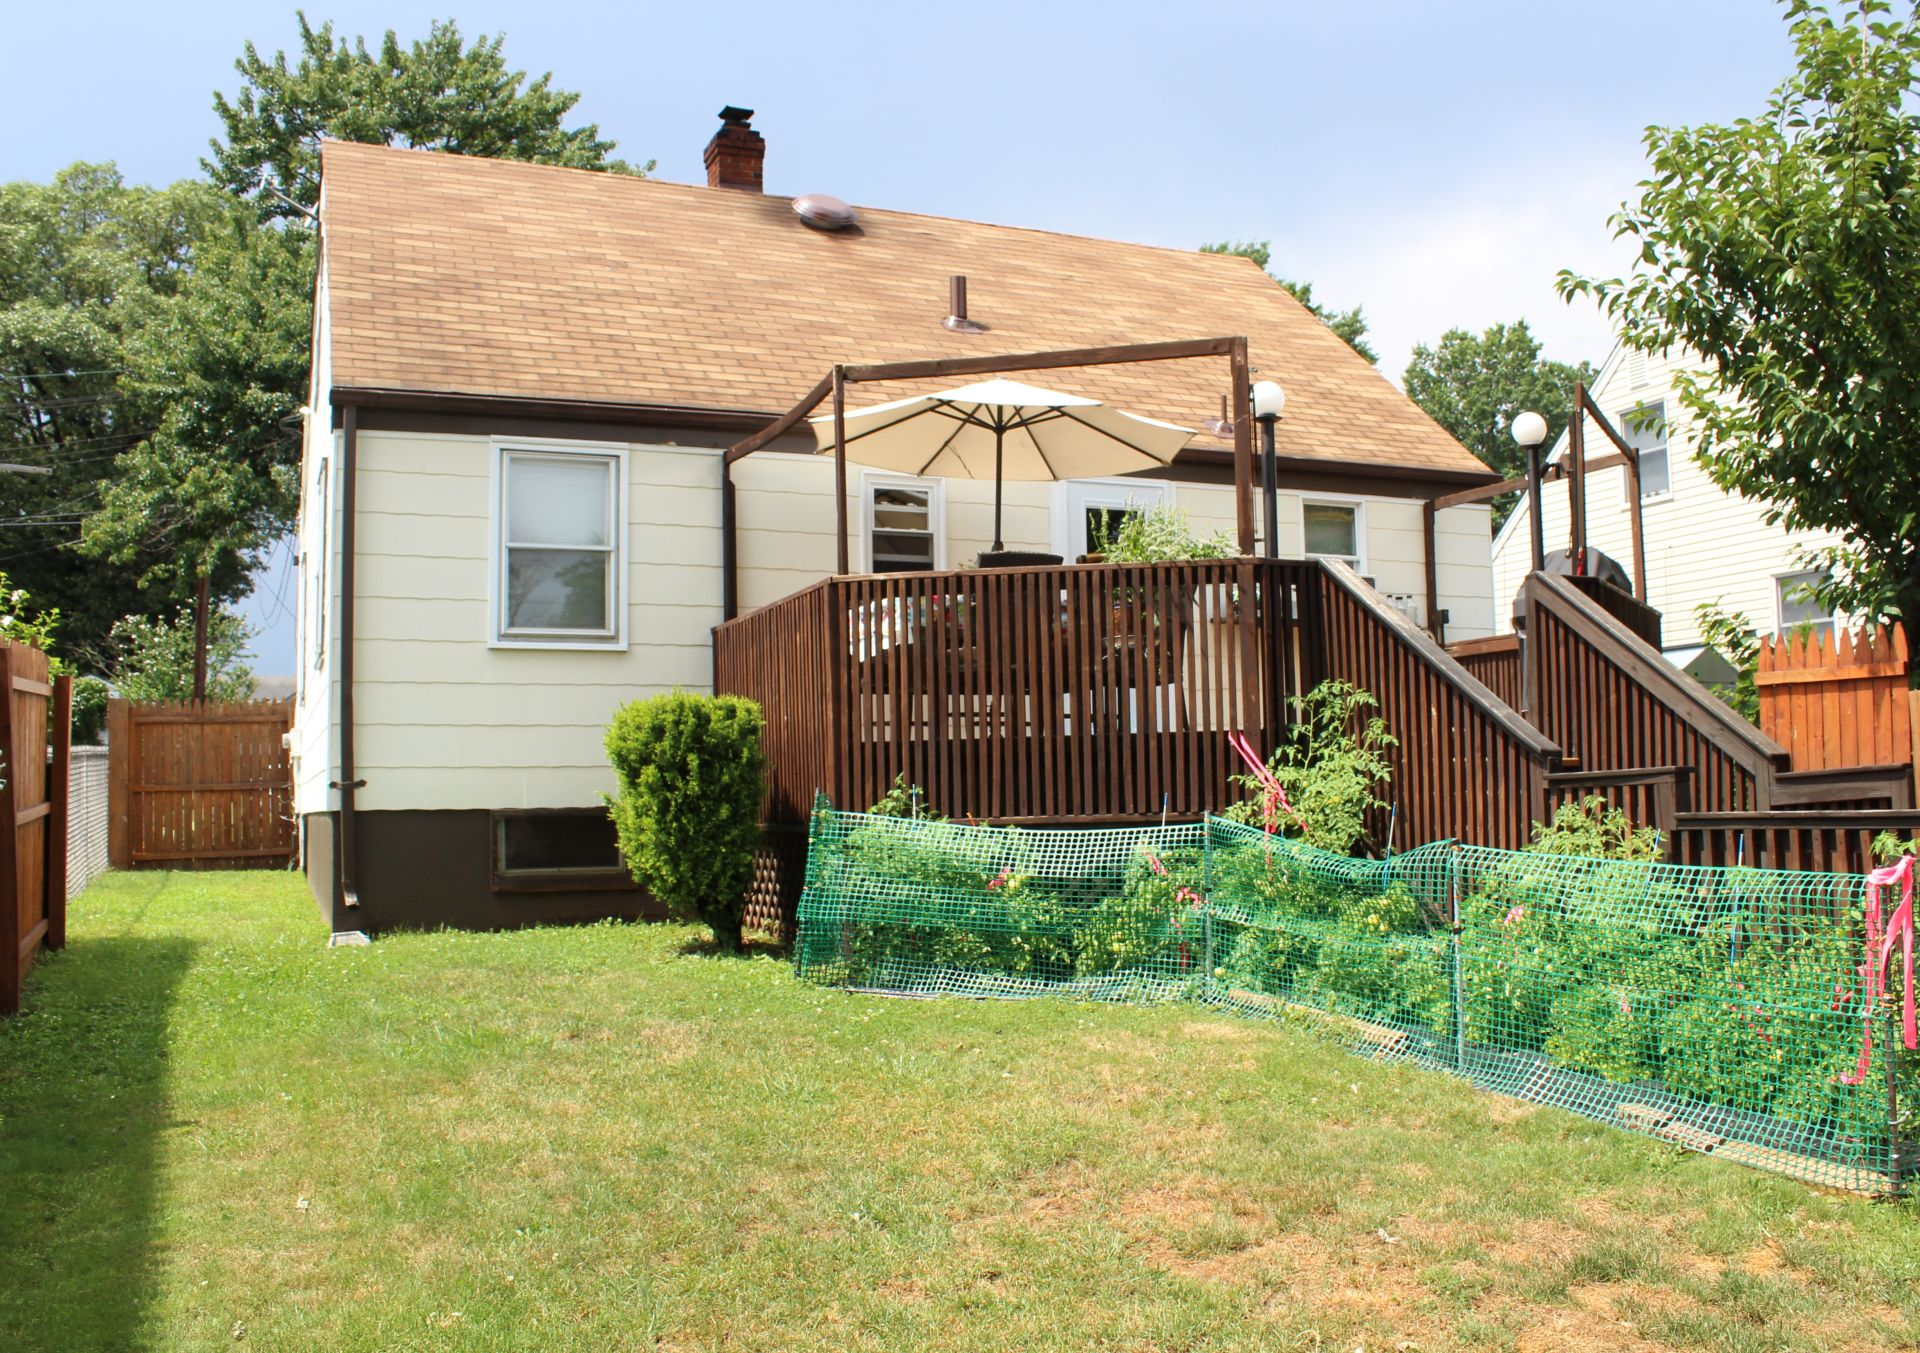 New Listing at 108 Kimball Street in Iselin